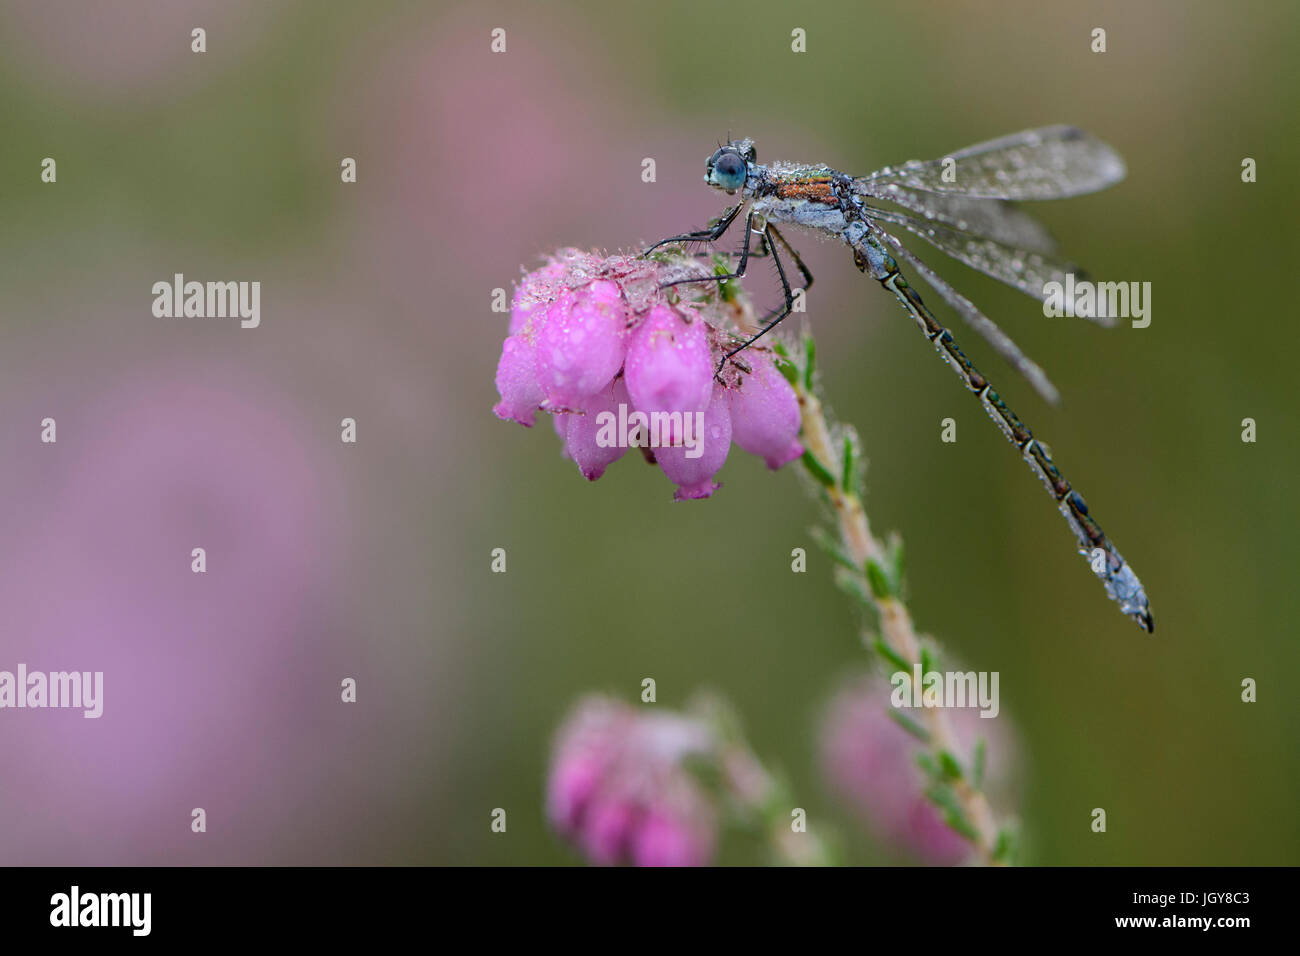 Emerald Damselfly or Common Spreadwing on flower of Cross-leaved Heath covered in morning dew, - Stock Image